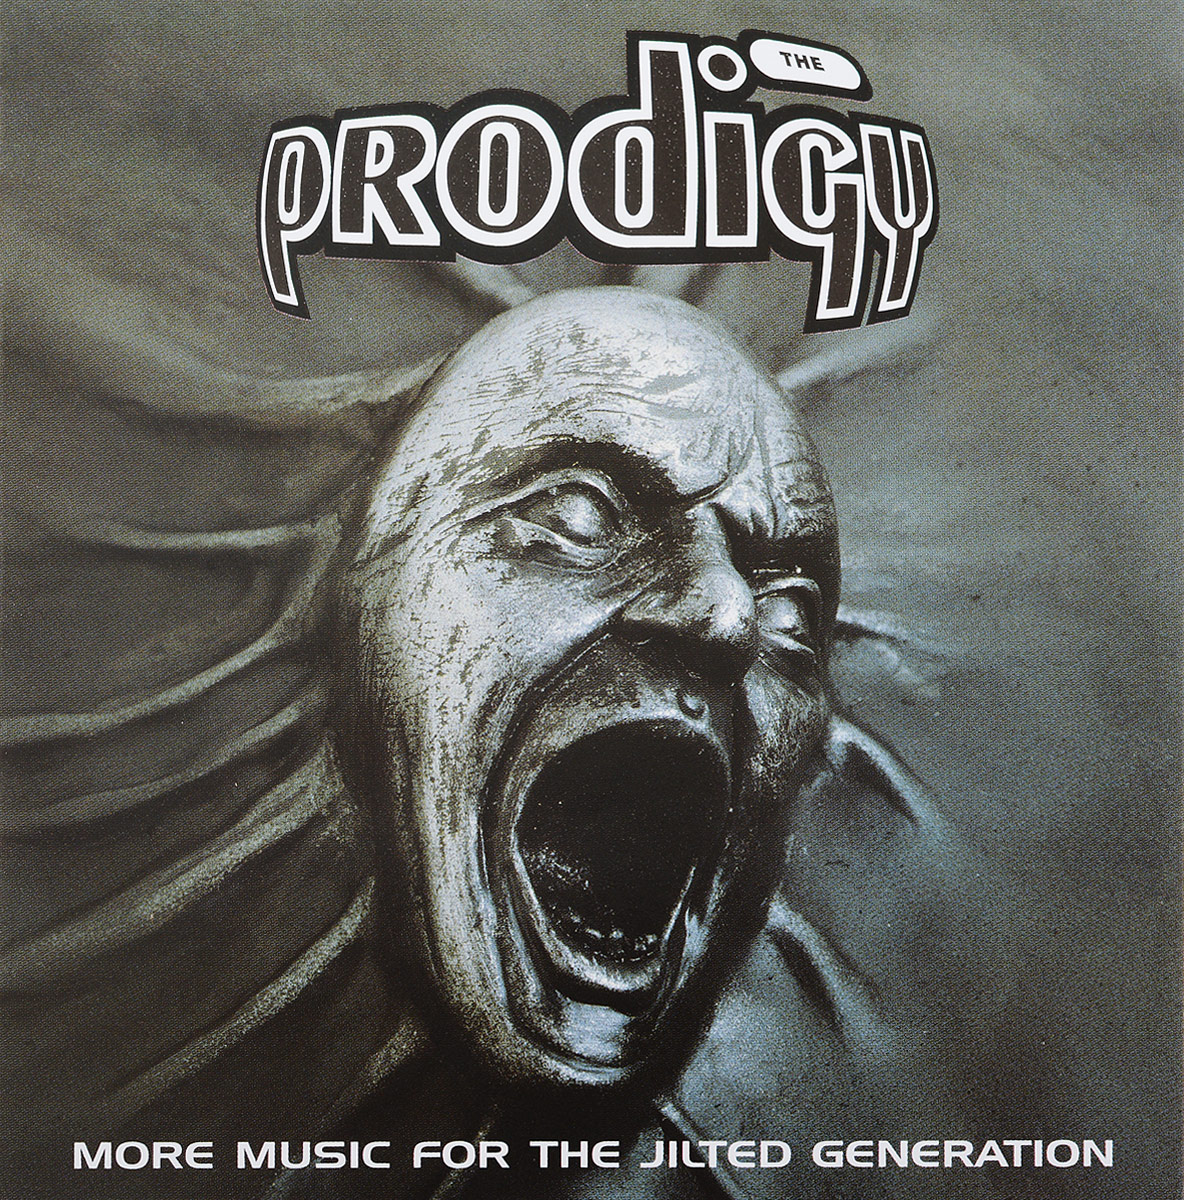 цена на The Prodigy The Prodigy. More Music For The Jilted Generation (2 CD)